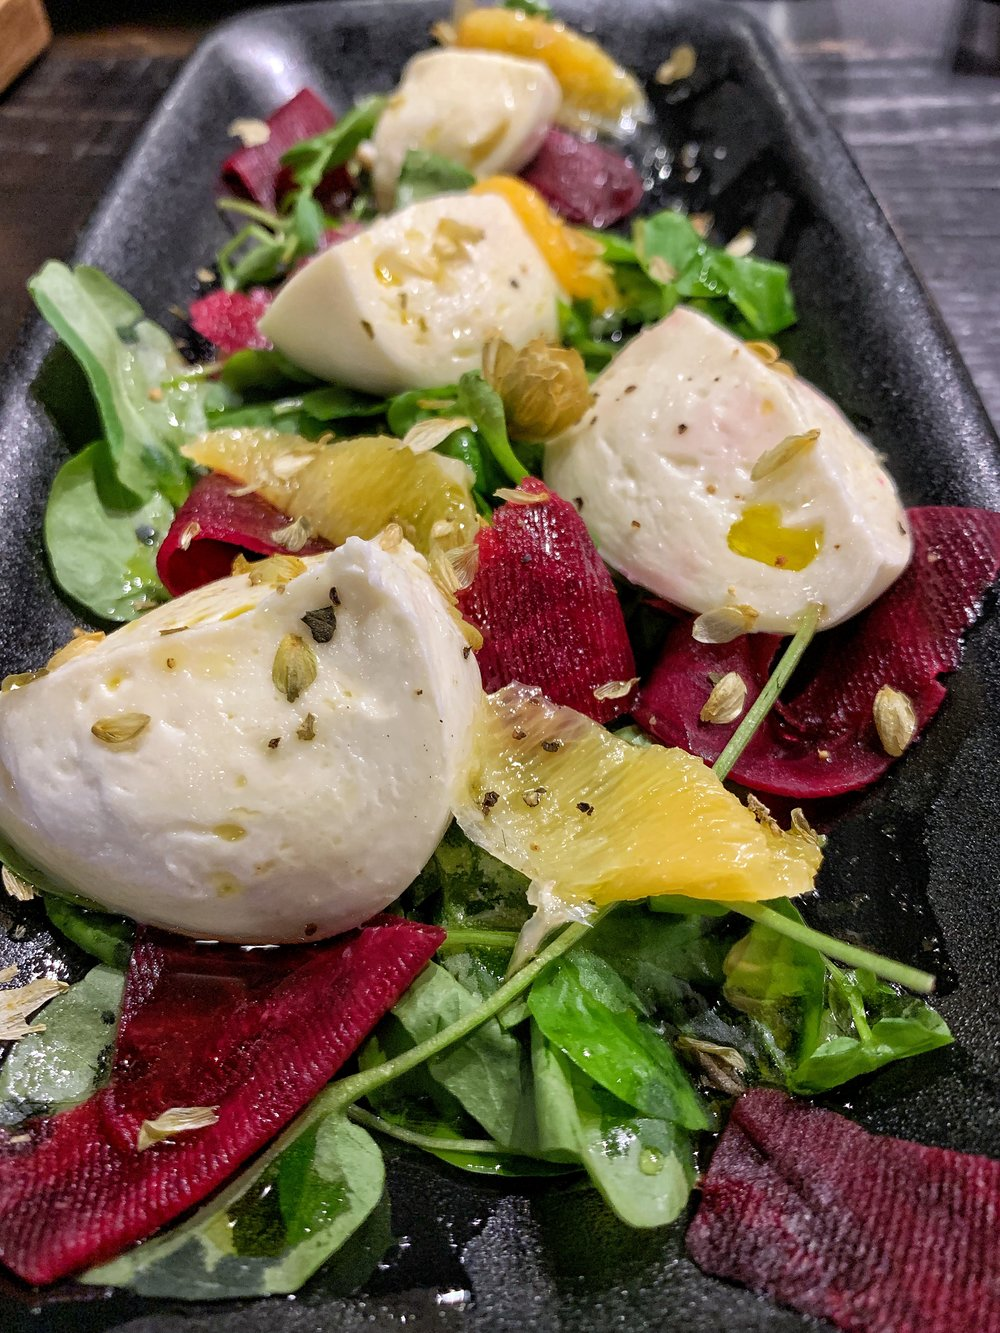 Daily Mozzarella - If you're a mozzarella fan, then this dish is for you. Beautifully prepared mozzarella with pickled beets, watercress, oranges. The coolest part of this dish - DEHYDRATED HOPS sprinkled throughout. This was a really nice touch and definitely made it memorable.